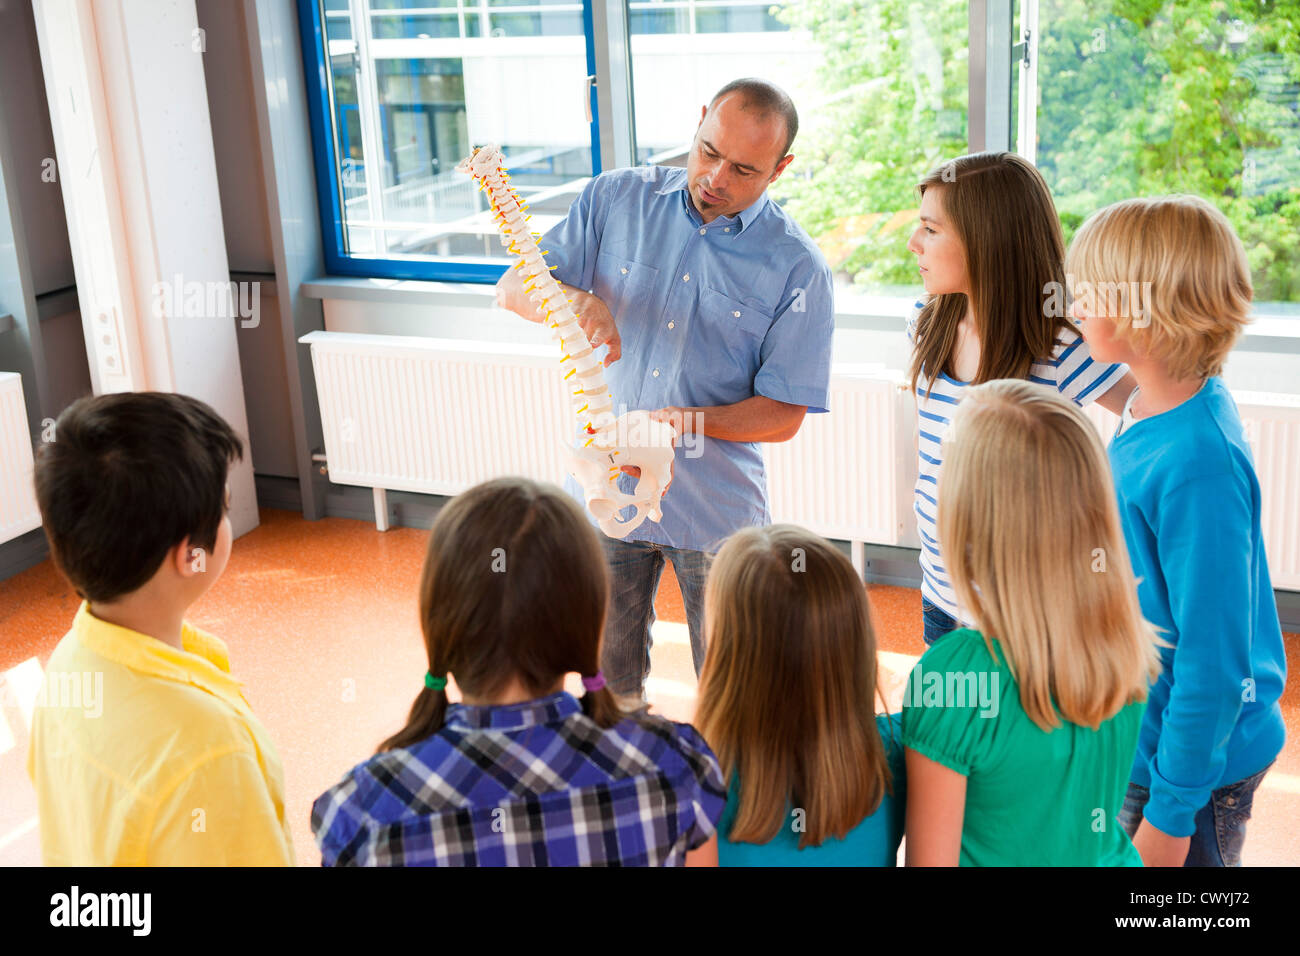 Teacher showing spinal column model in class - Stock Image